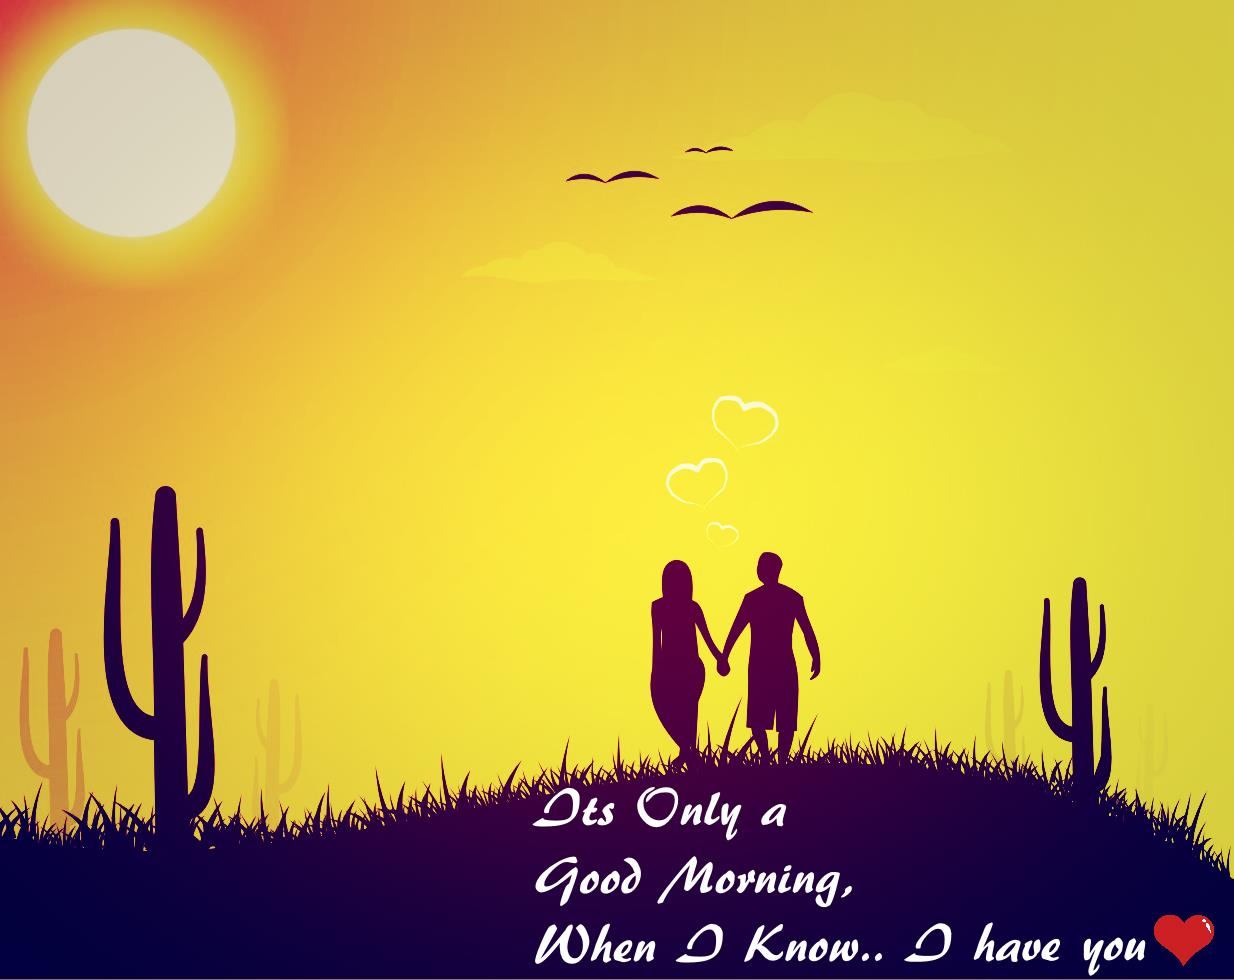 Wallpaper Good Morning With Love : Good Morning Wallpapers Free Download